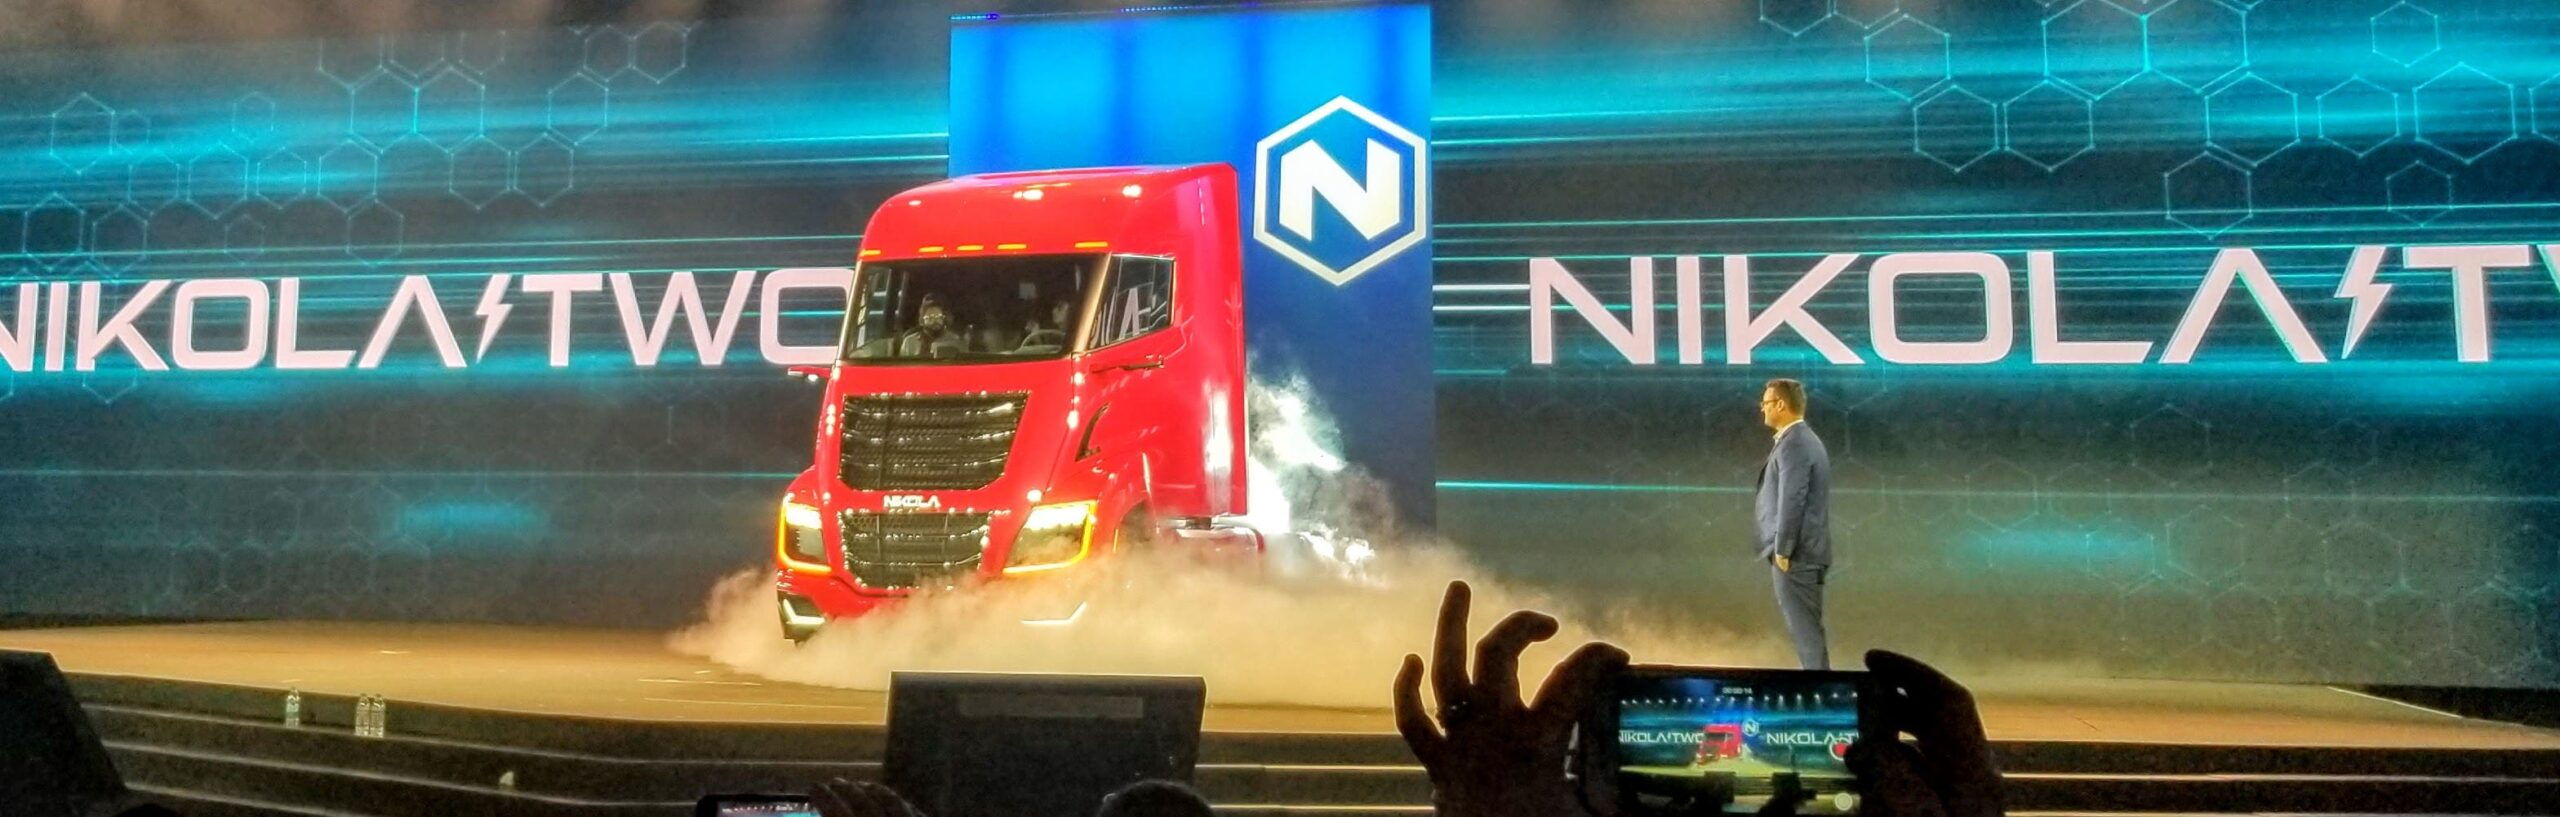 Nikola (NKLA) in Turmoil – What Should the Shareholders Now Expect Ami... image